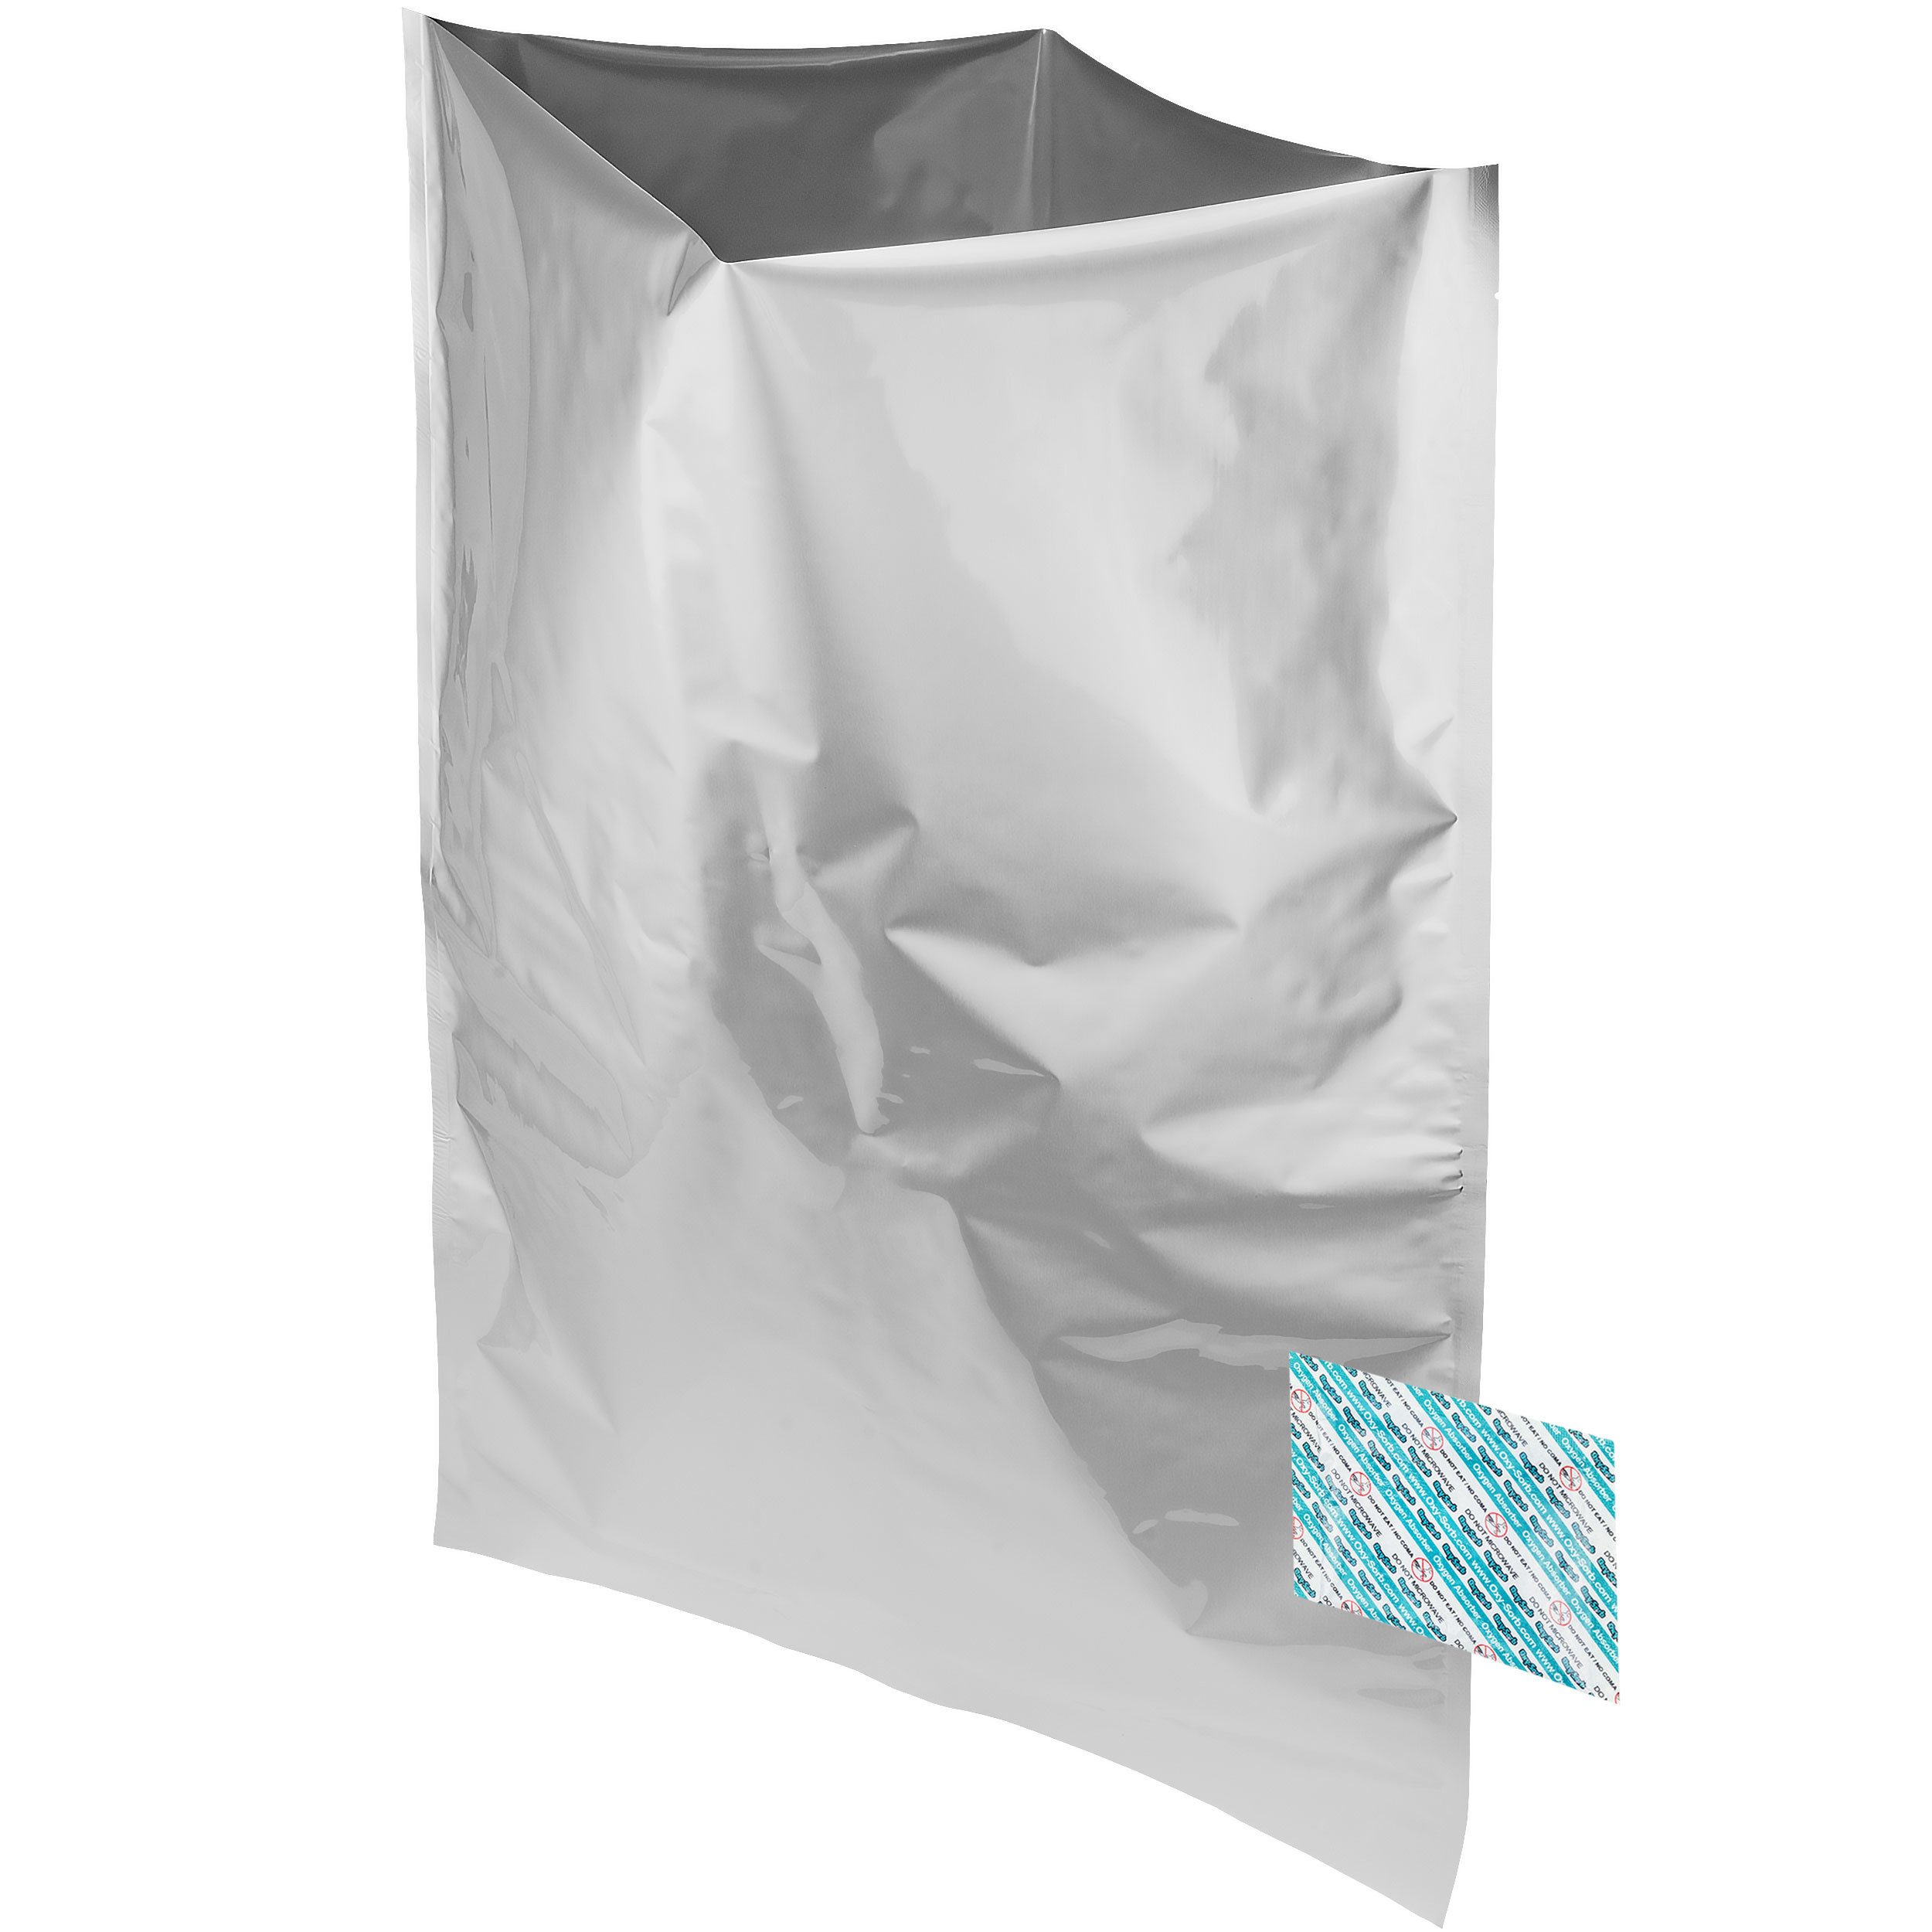 Mylar Bags & Oxygen Absorbers for Dried Food & Long Term Storage by Dry-Packs, 5-Gallon, Pack of 30